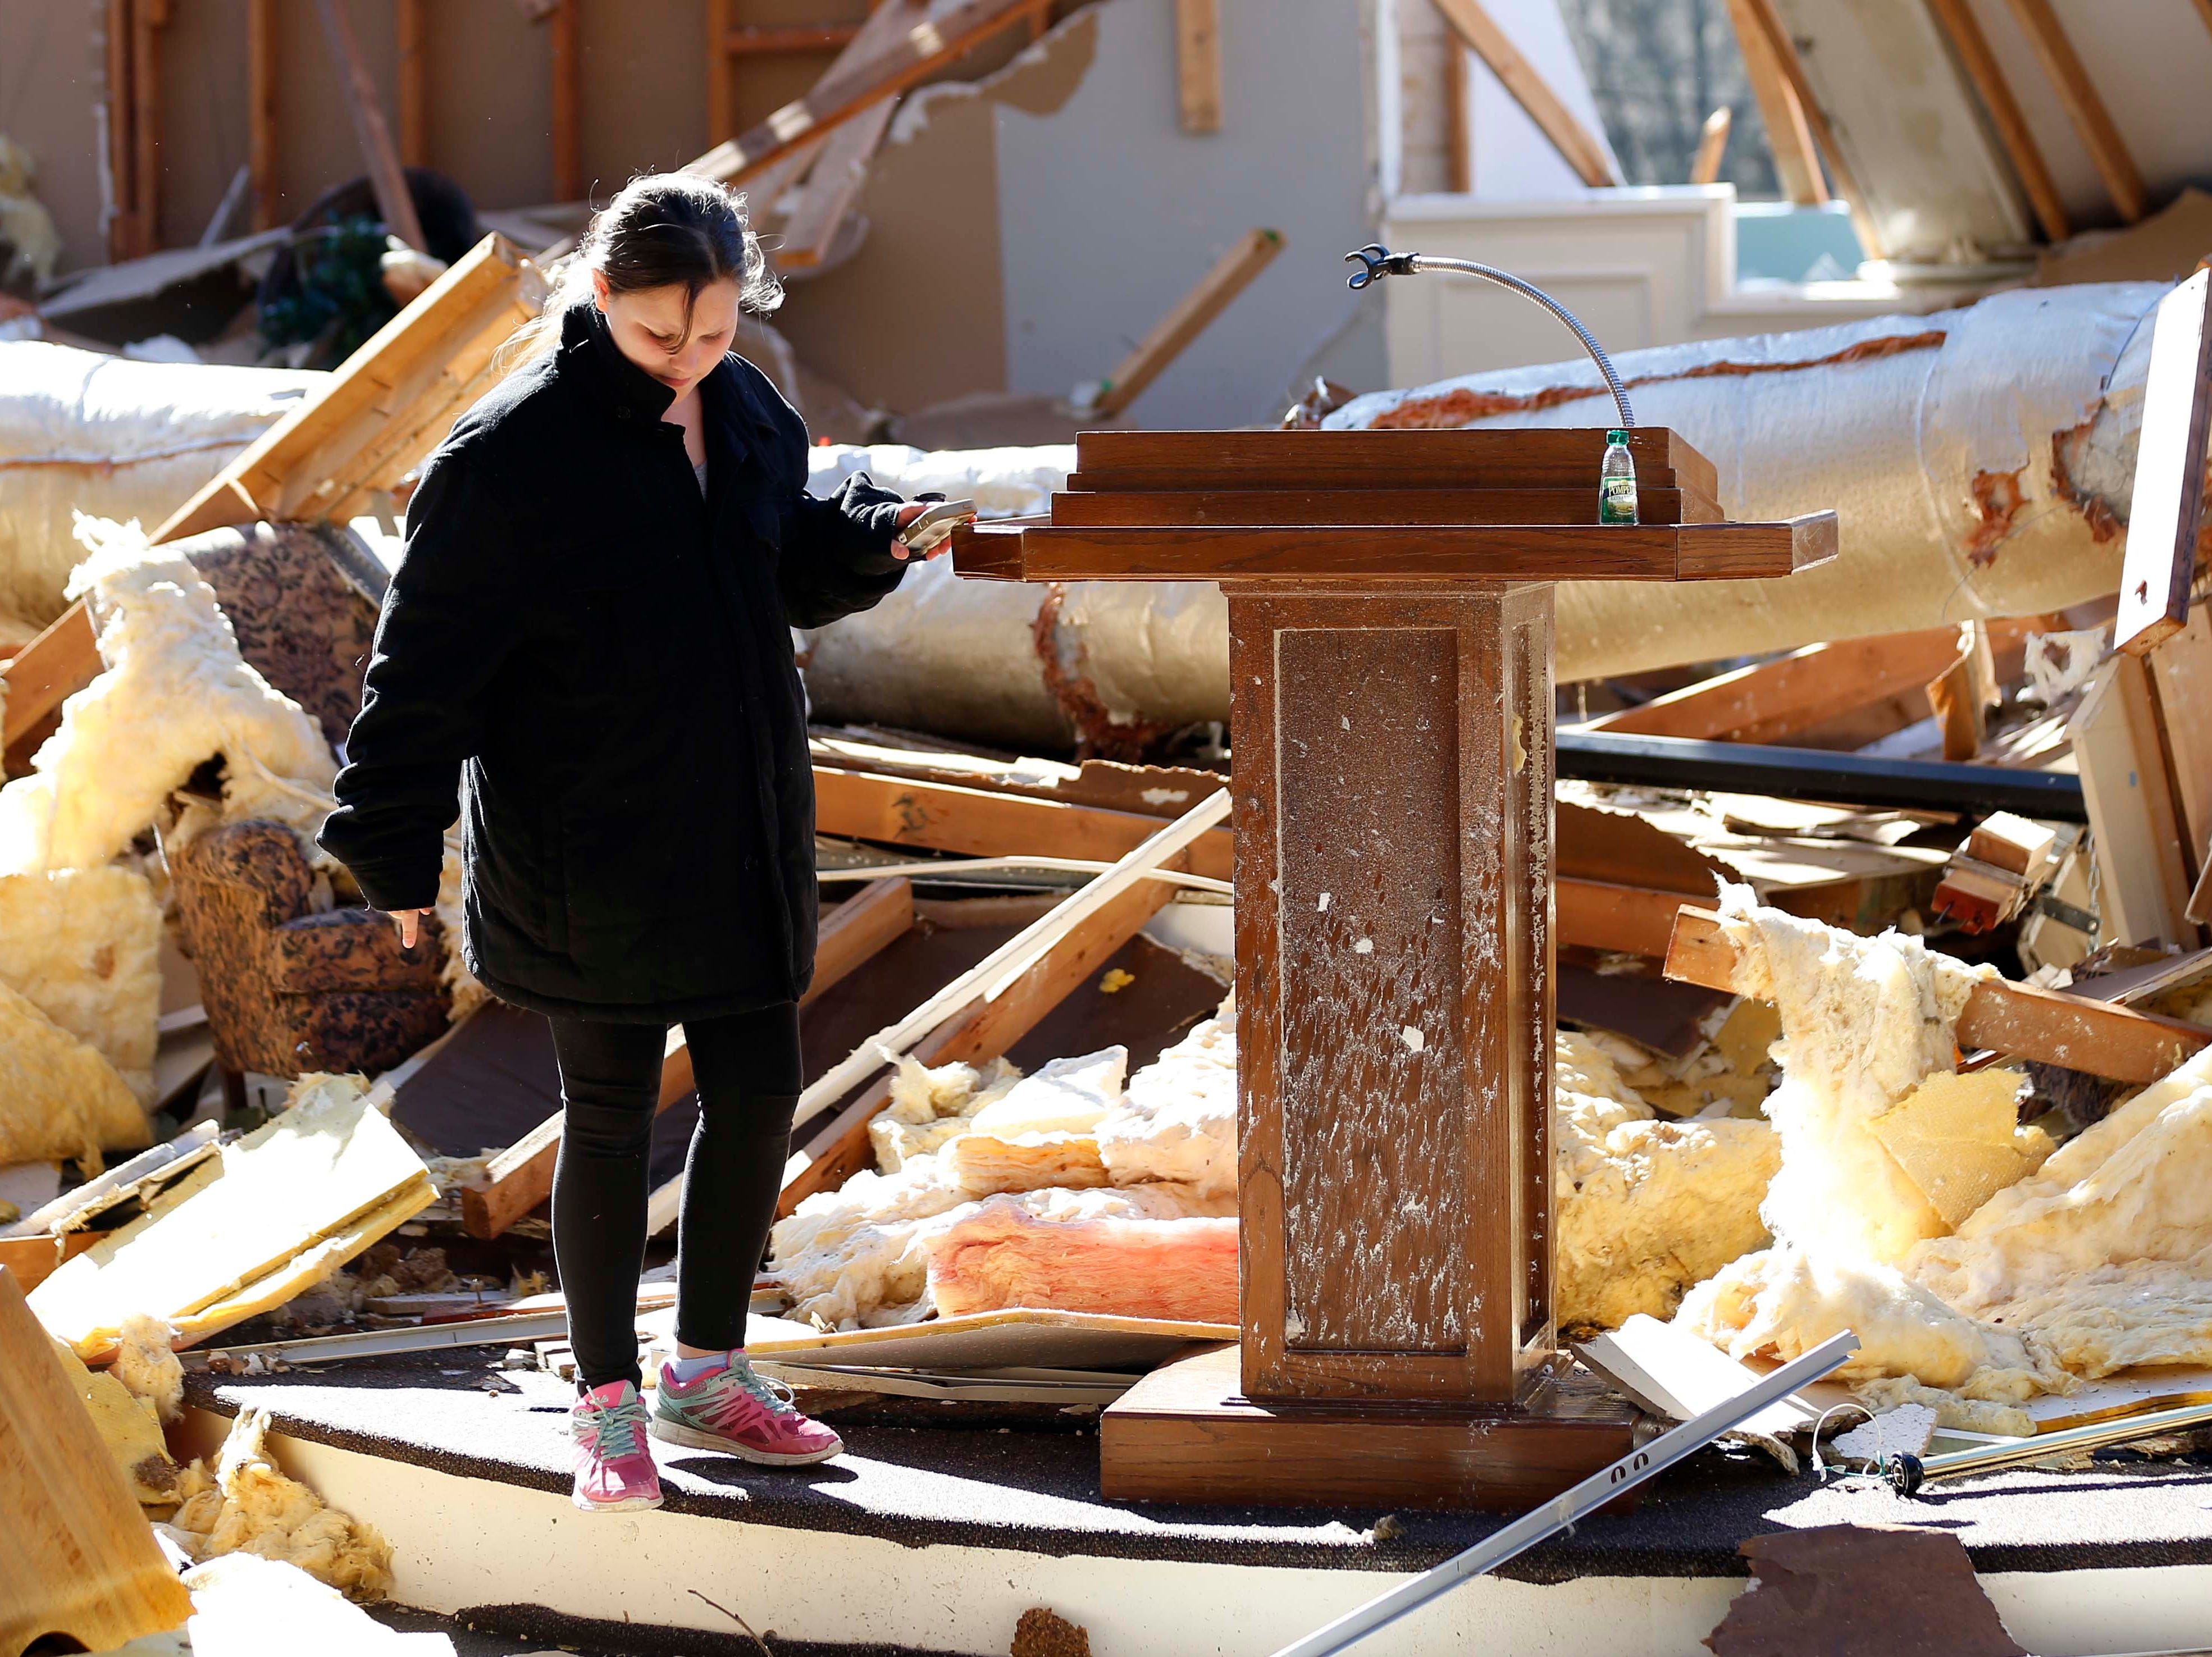 A child plays around the podium that was virtually undamaged or moved in the tornado that destroyed First Pentecostal Church in Columbus, Miss., Sunday morning, Feb. 24, 2019. While no-one was injured during Saturday's storm, at least one person was killed in town among the shattered businesses and wrecked homes. (AP Photo/Rogelio V. Solis)